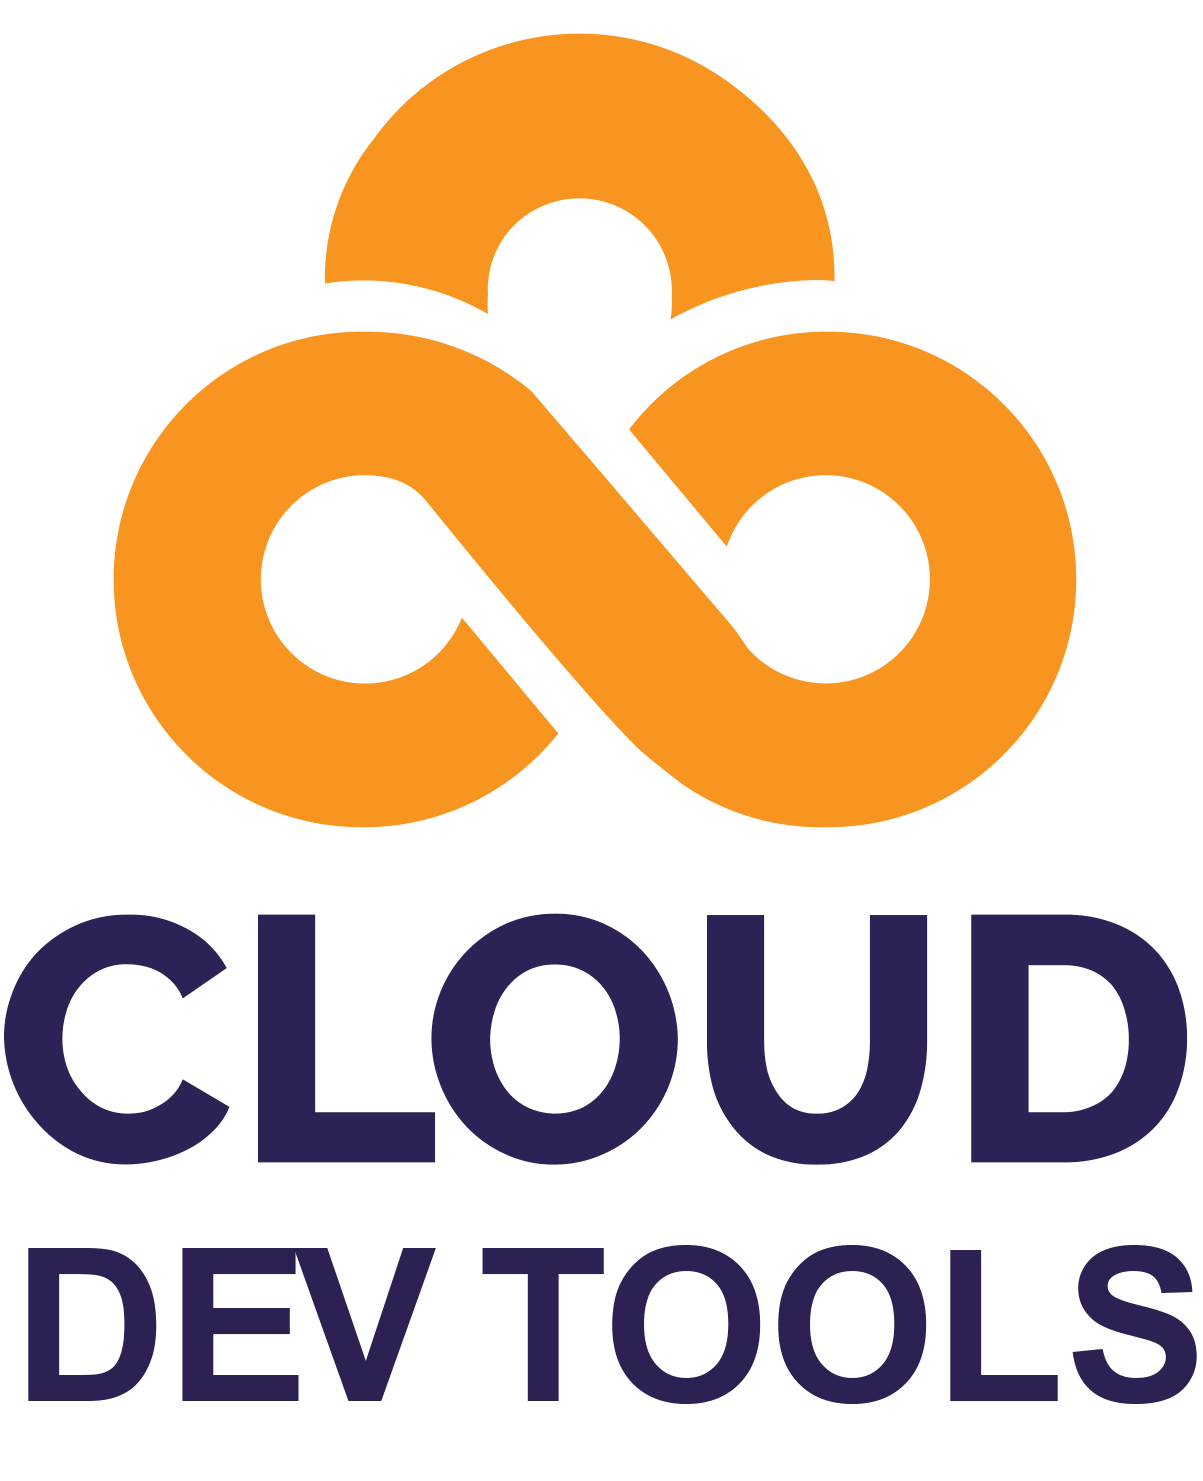 Eclipse Cloud Development Working Group logo